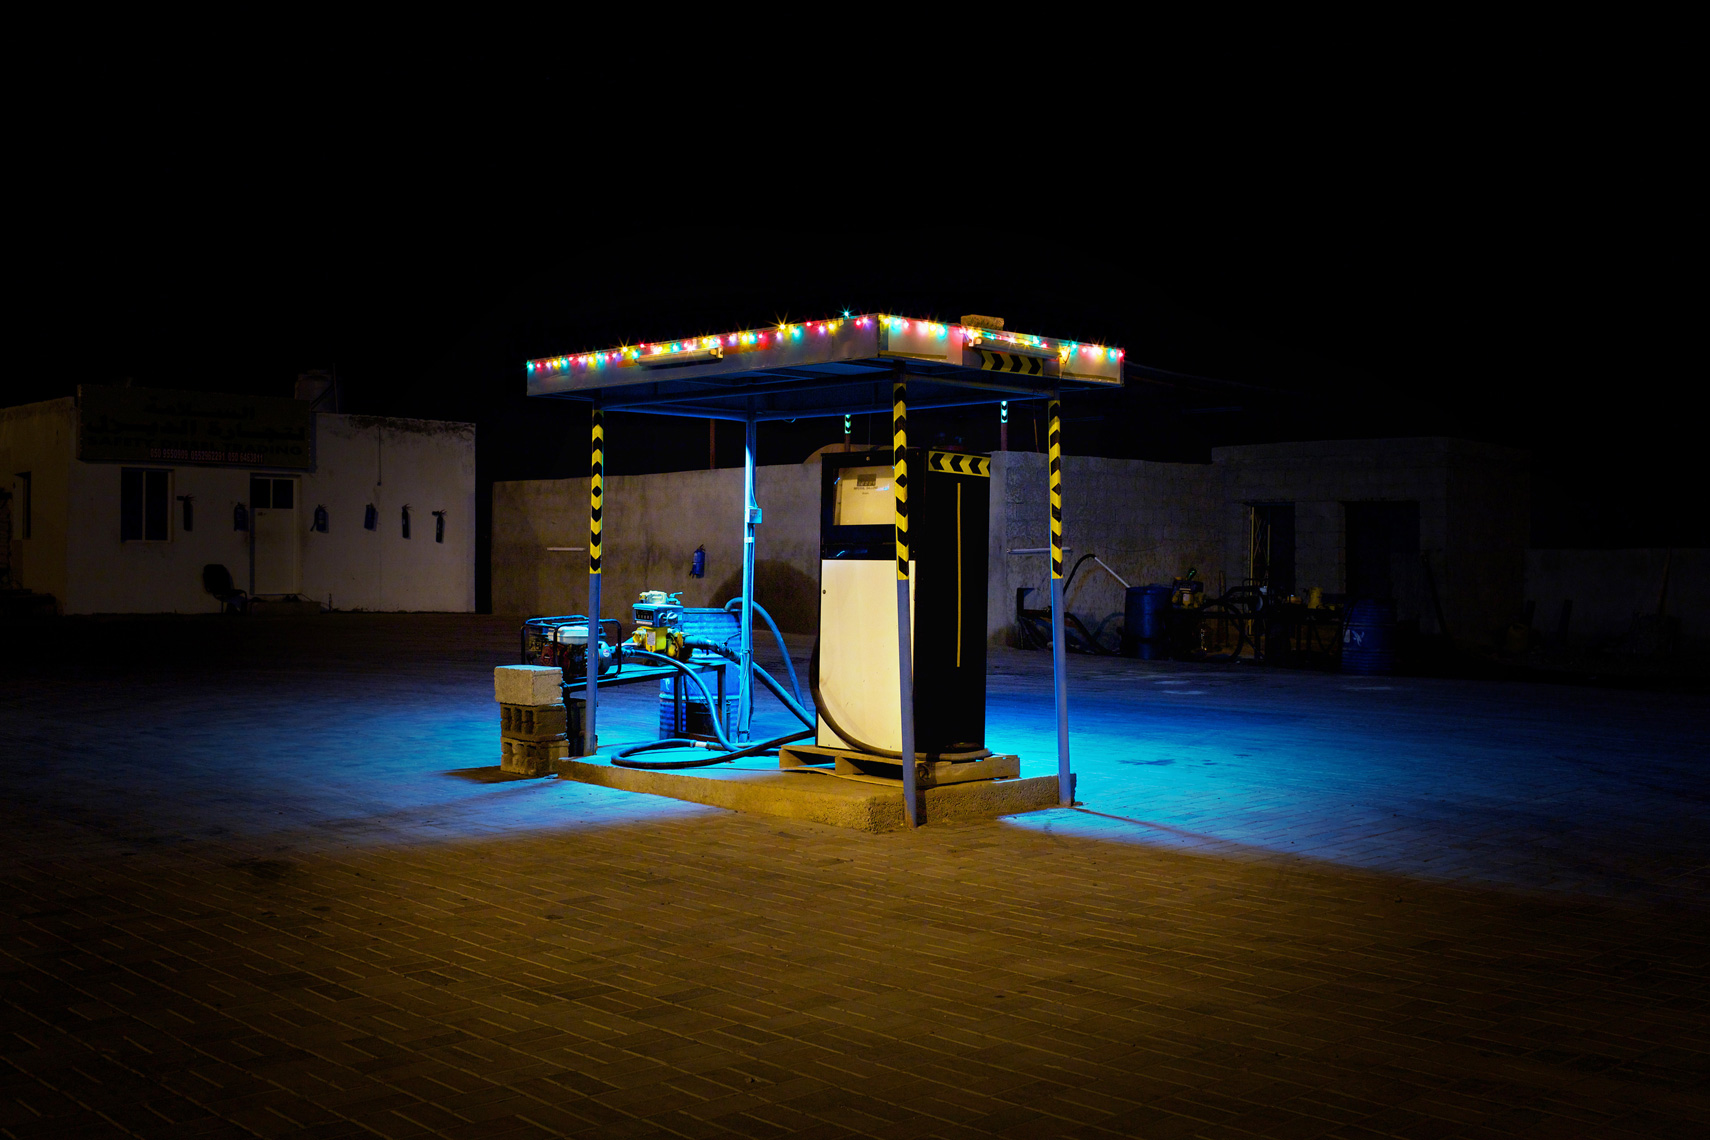 Substation-4-Masfout-Ajman-2010